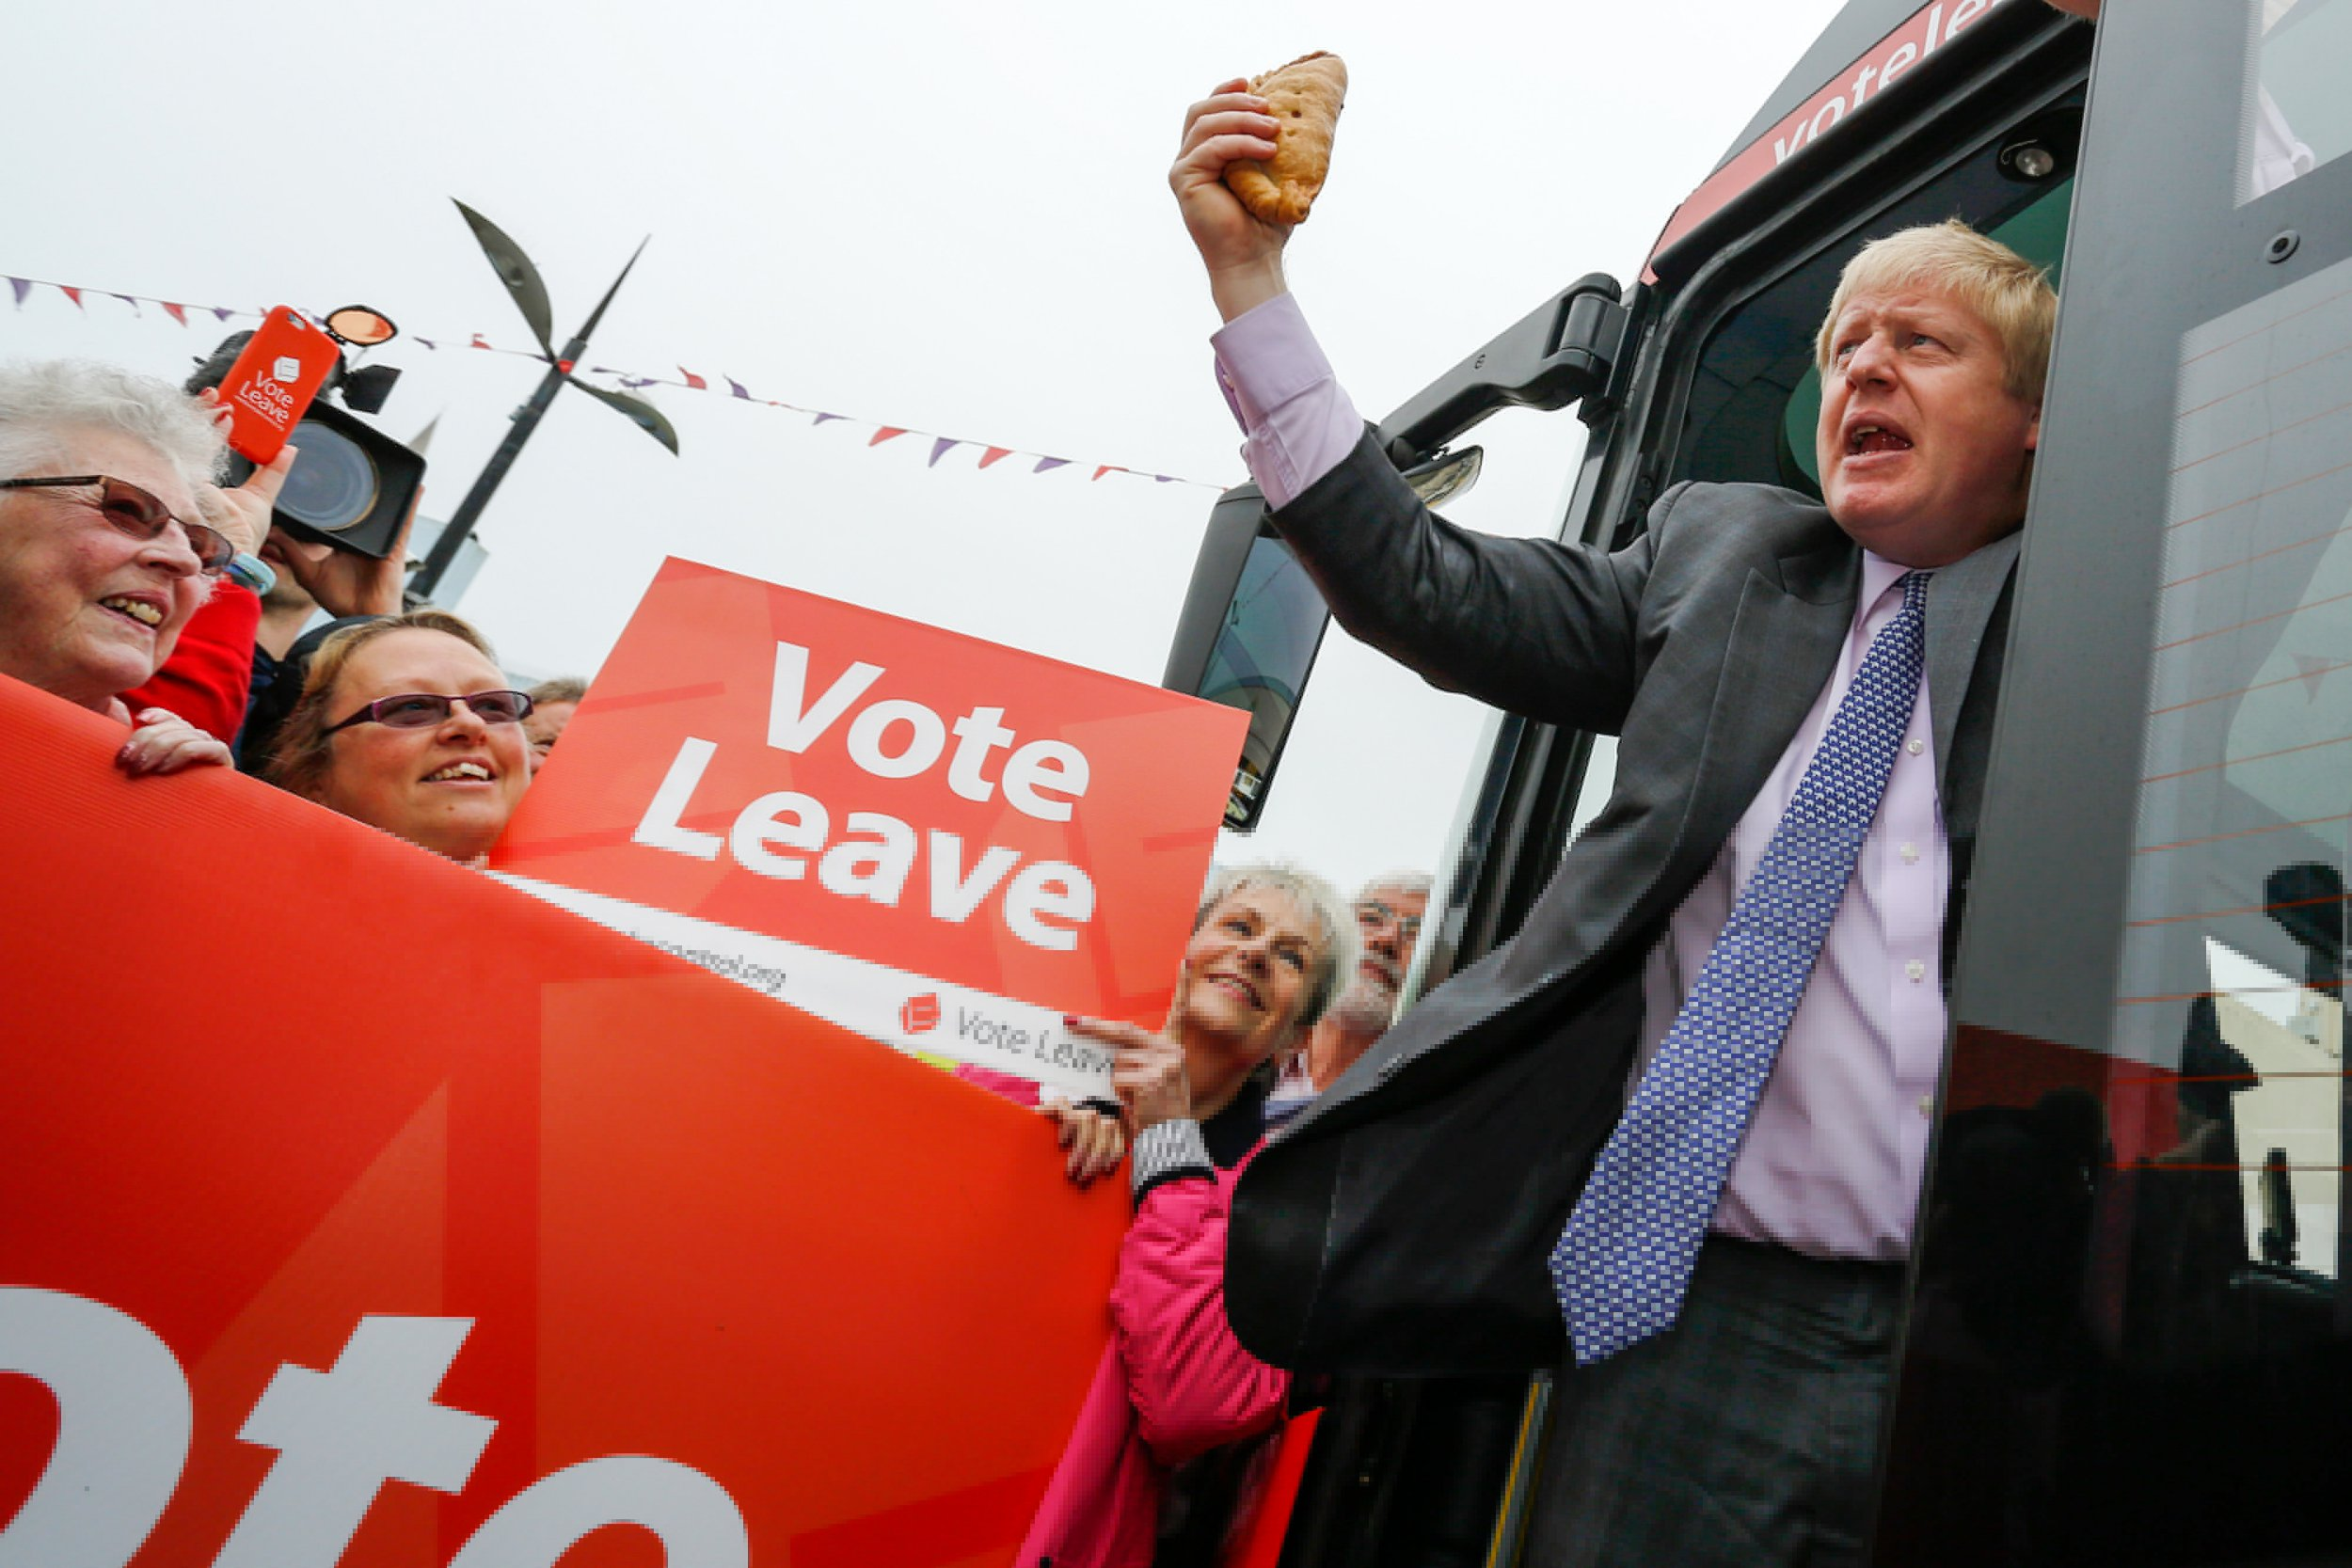 """Boris Johnson, the former mayor of London, waves a Cornish Pasty during the first day of a nationwide bus tour to campaign for a so-called Brexit in Truro, U.K., on Wednesday, May 11, 2016. While online polls suggest the contest for the June 23 referendum is too close to call, less frequent telephone polling has put the """"Remain"""" camp ahead. Photographer: Luke MacGregor/Bloomberg via Getty Images"""